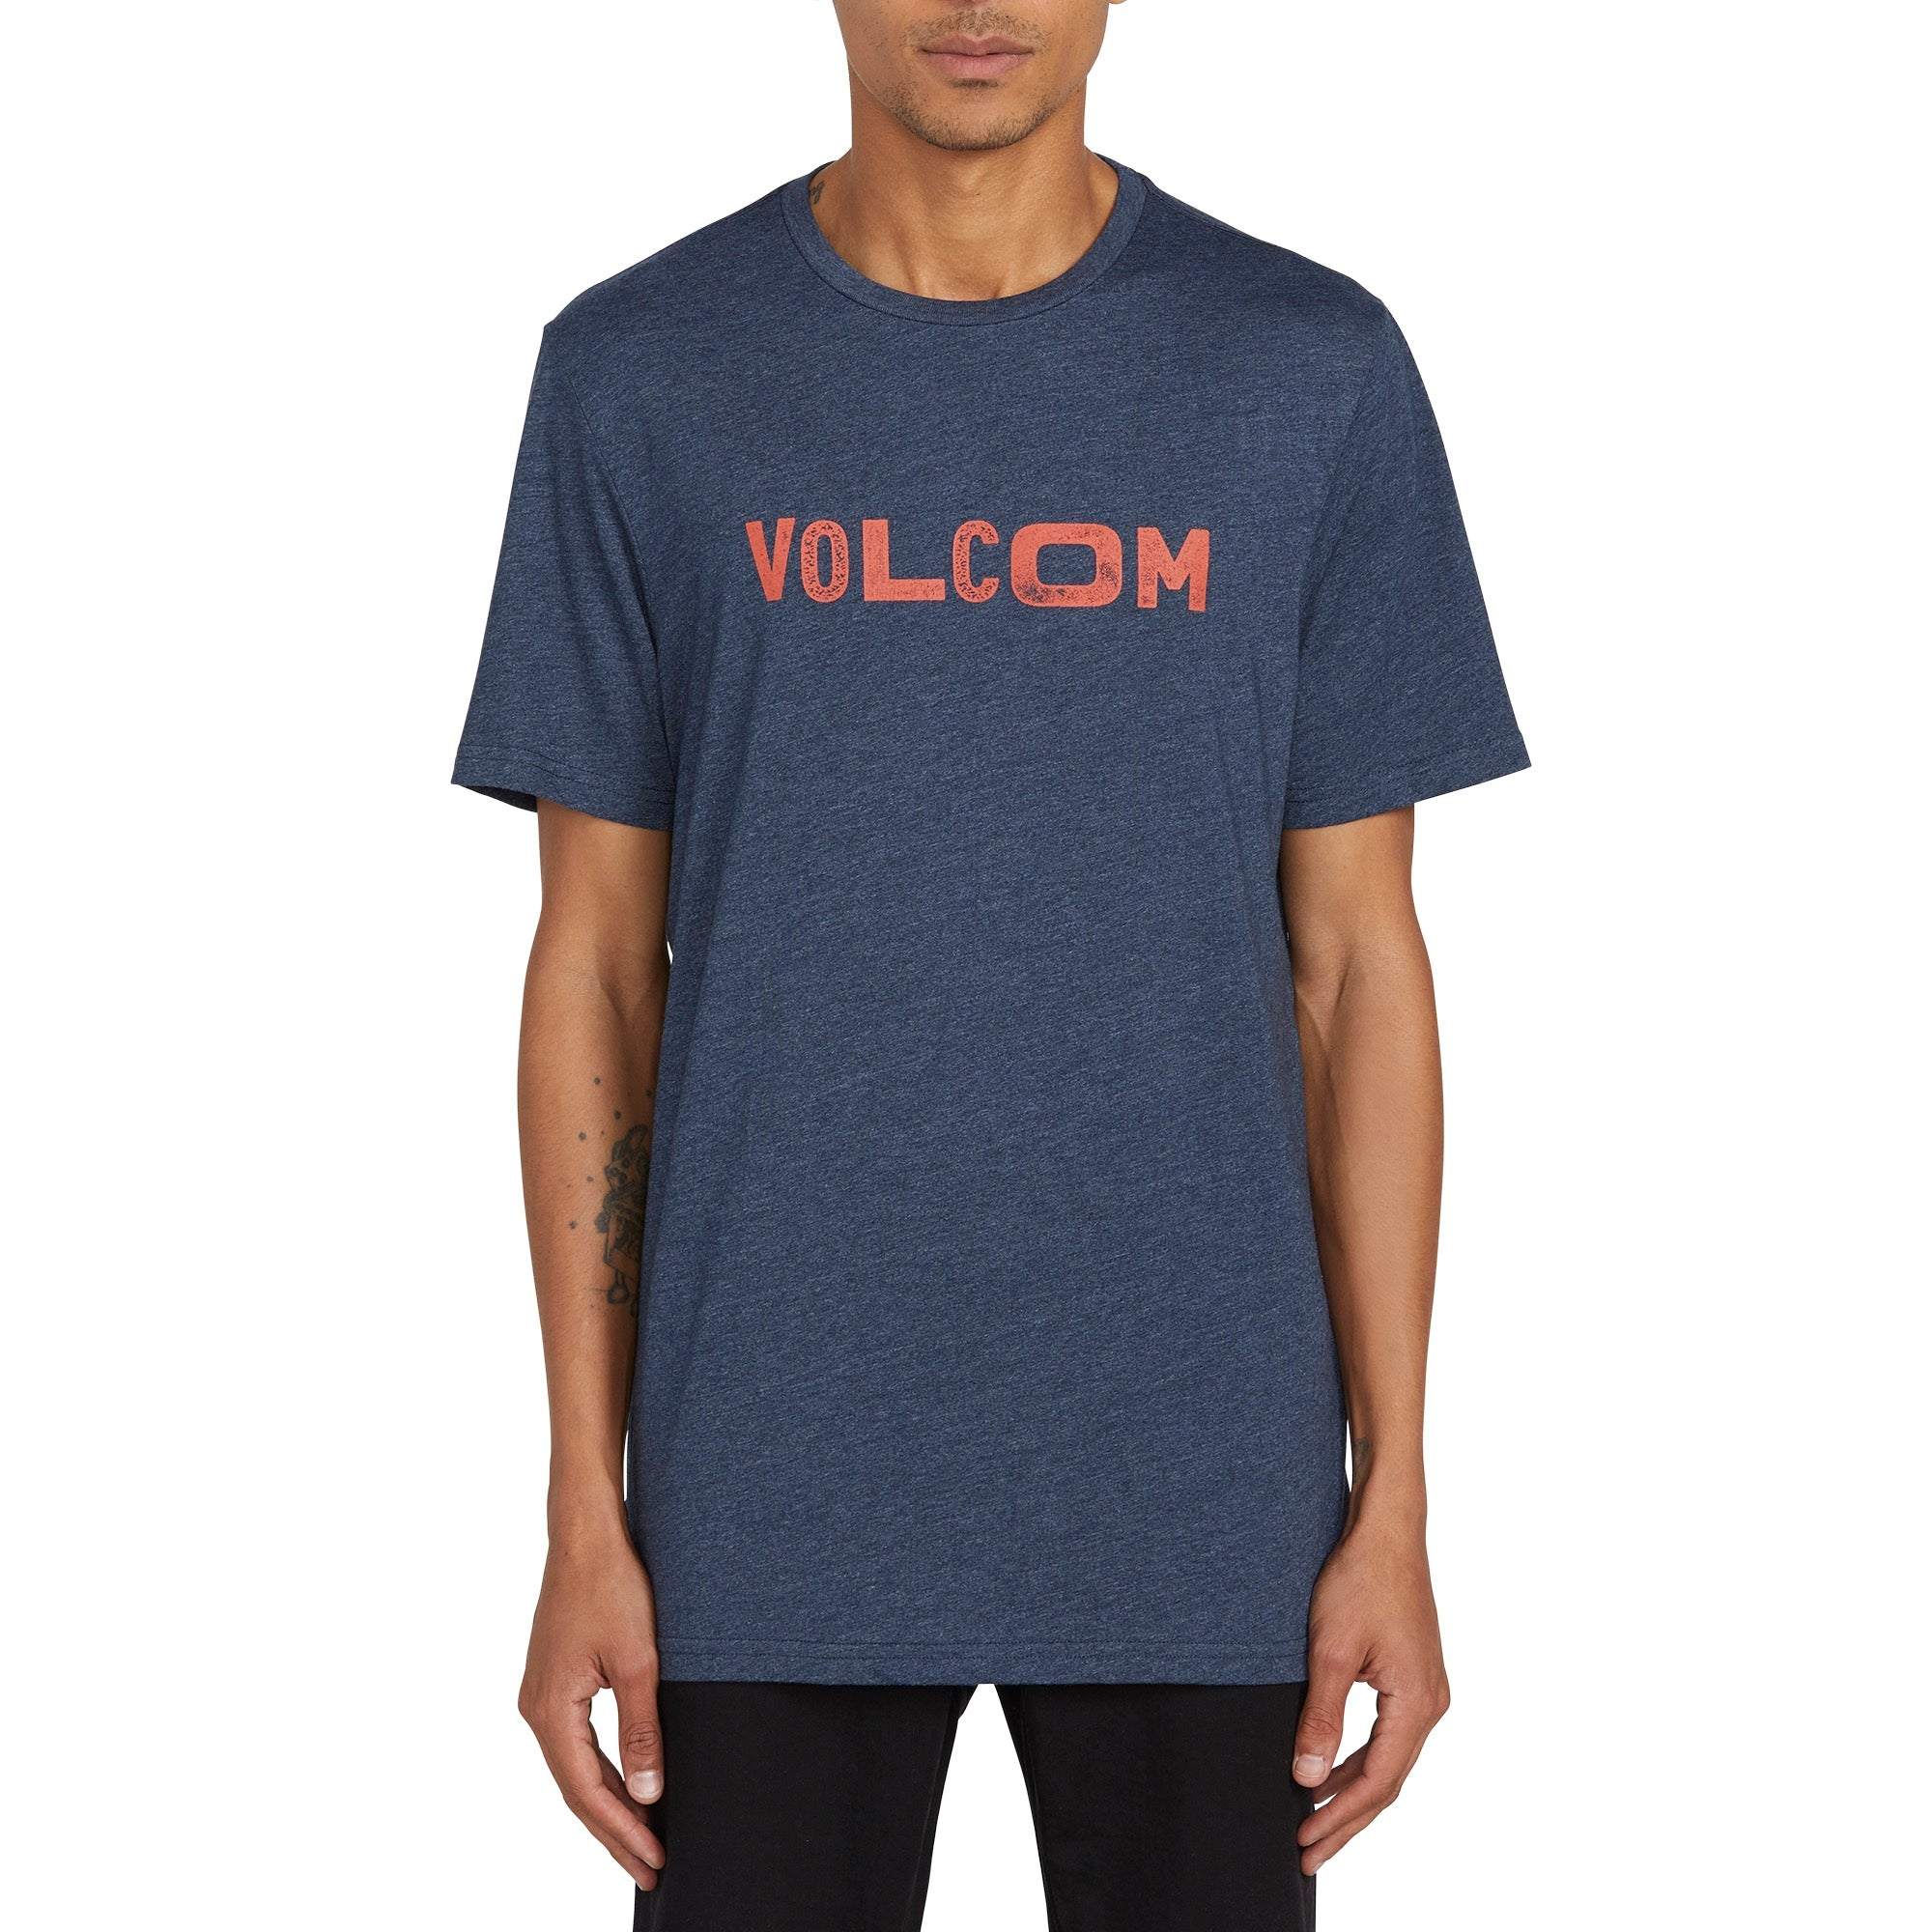 Volcom Reply T-Shirt - 88 Gear